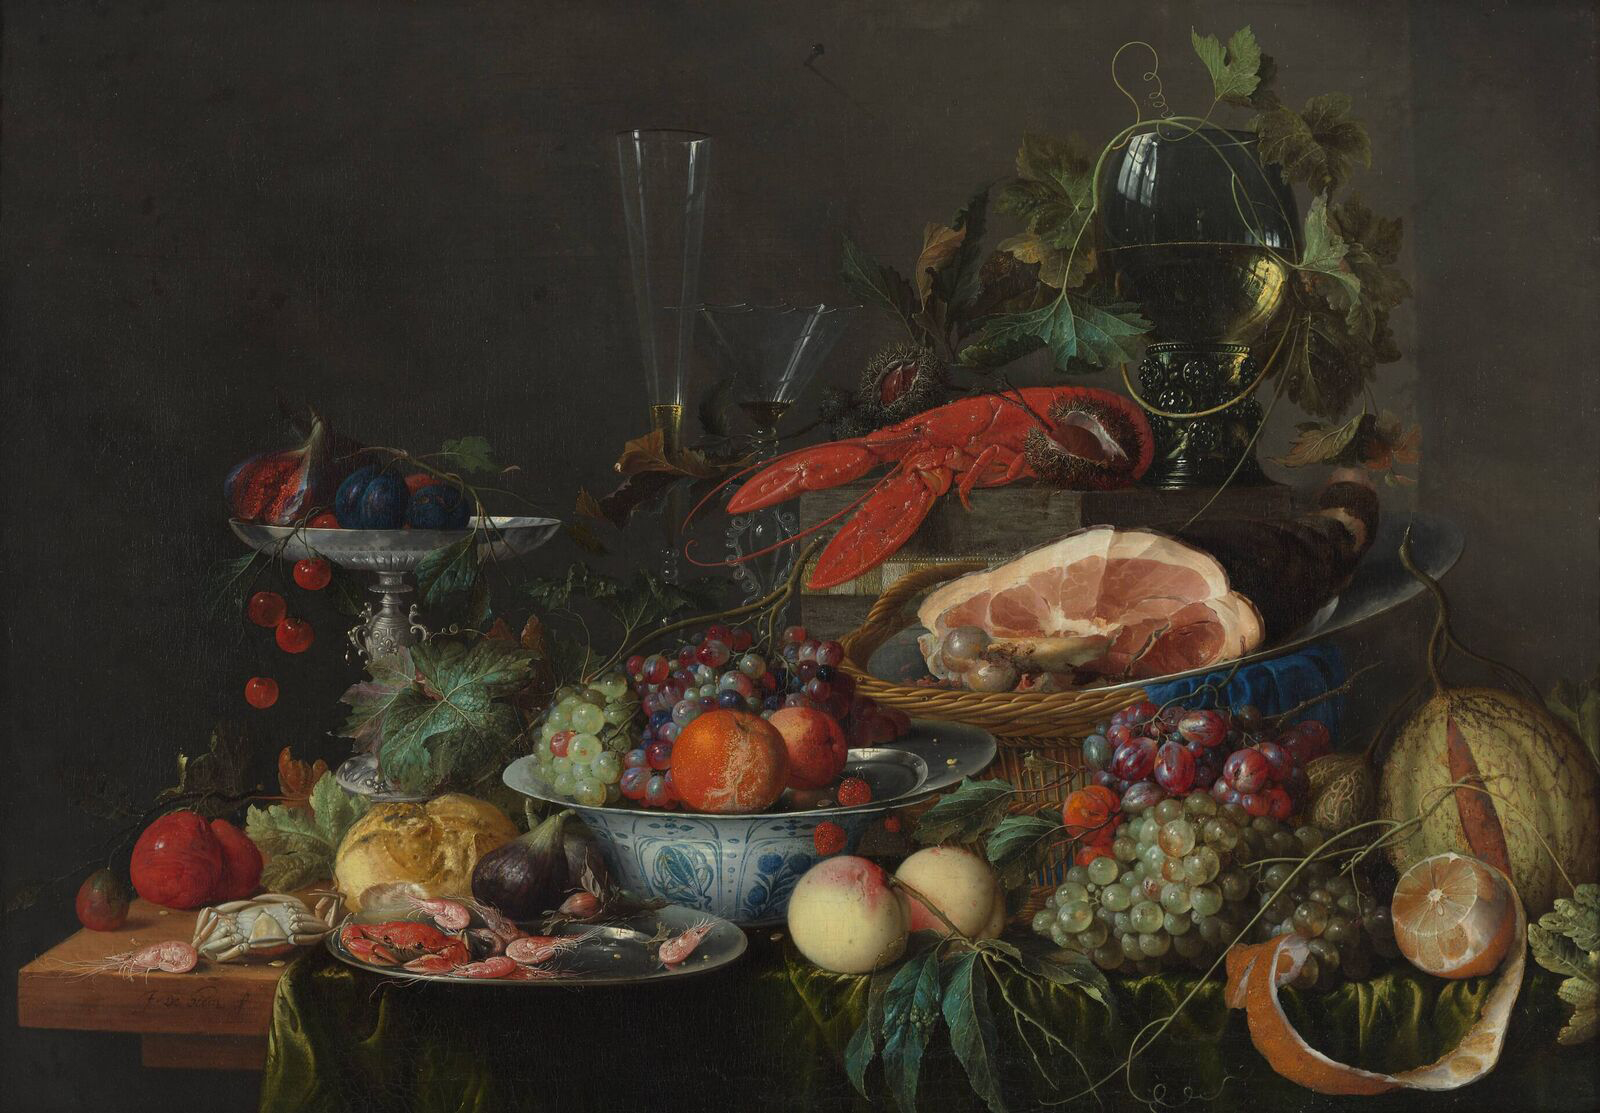 #FoodPorn, Circa 1600s: Then And Now, It Was More About Status Than Appetite | WGBH | Craving Boston